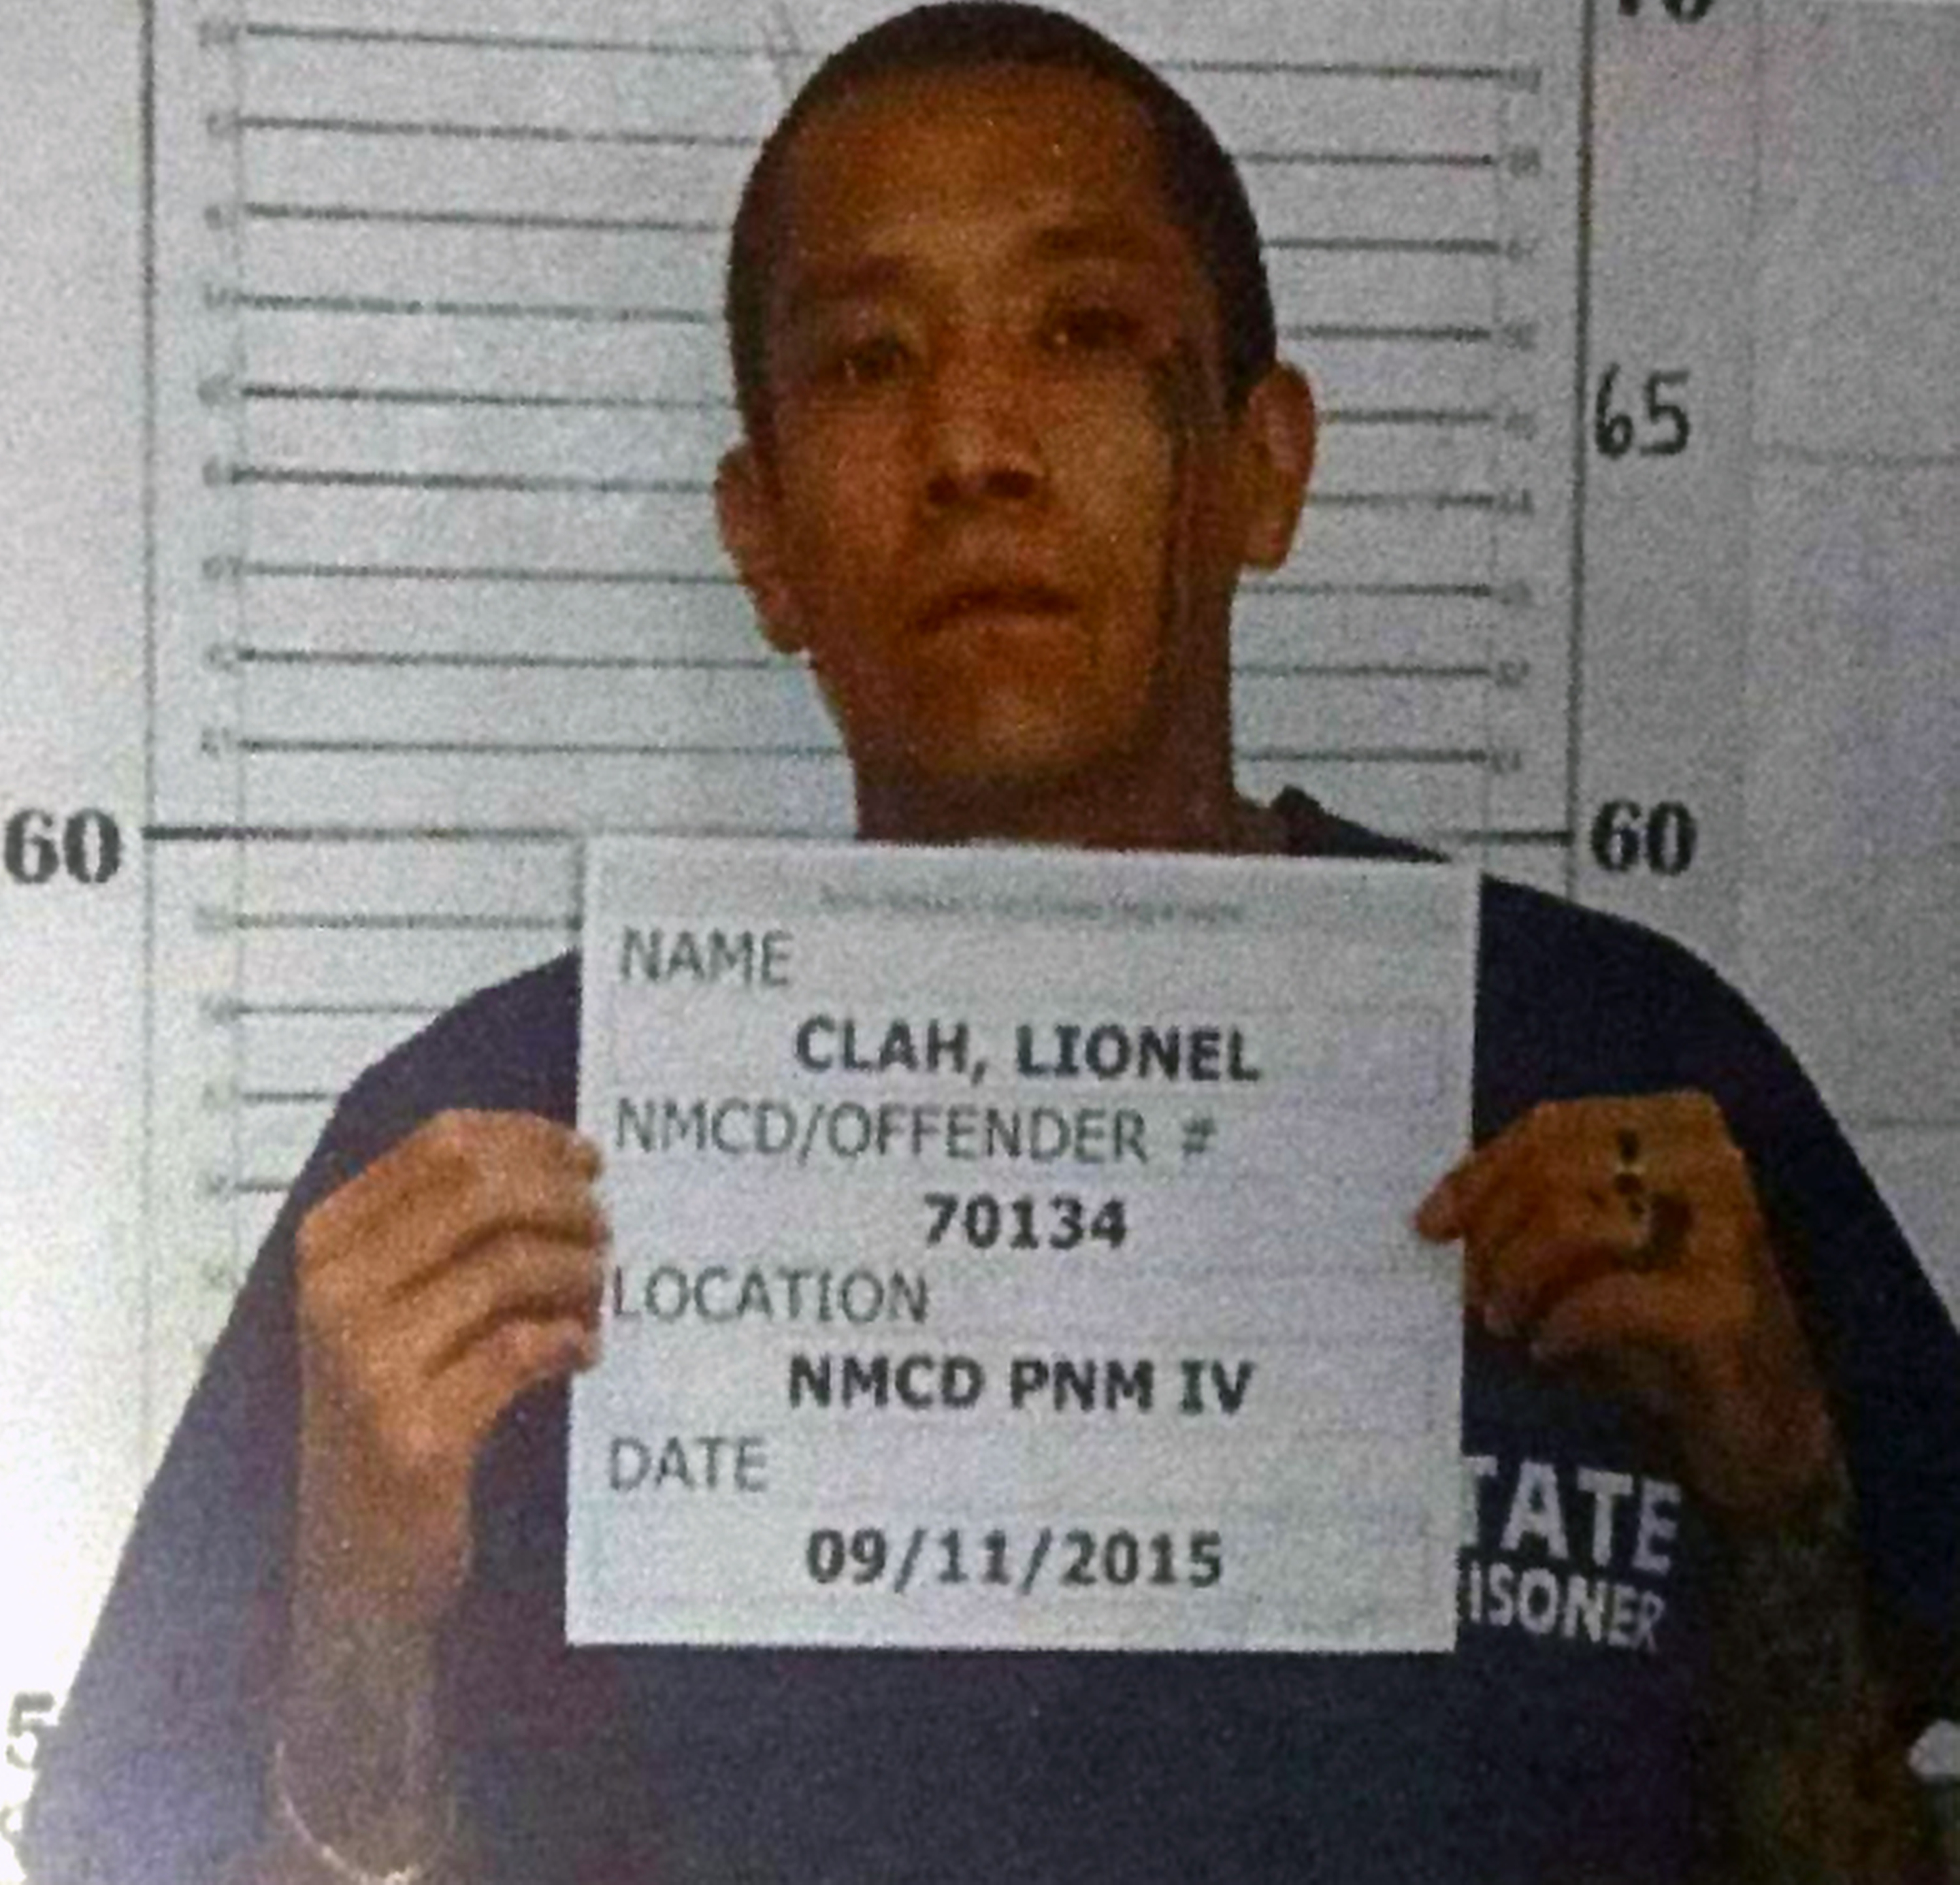 This photo provided by the New Mexico Corrections Department shows inmate Lionel Clah.